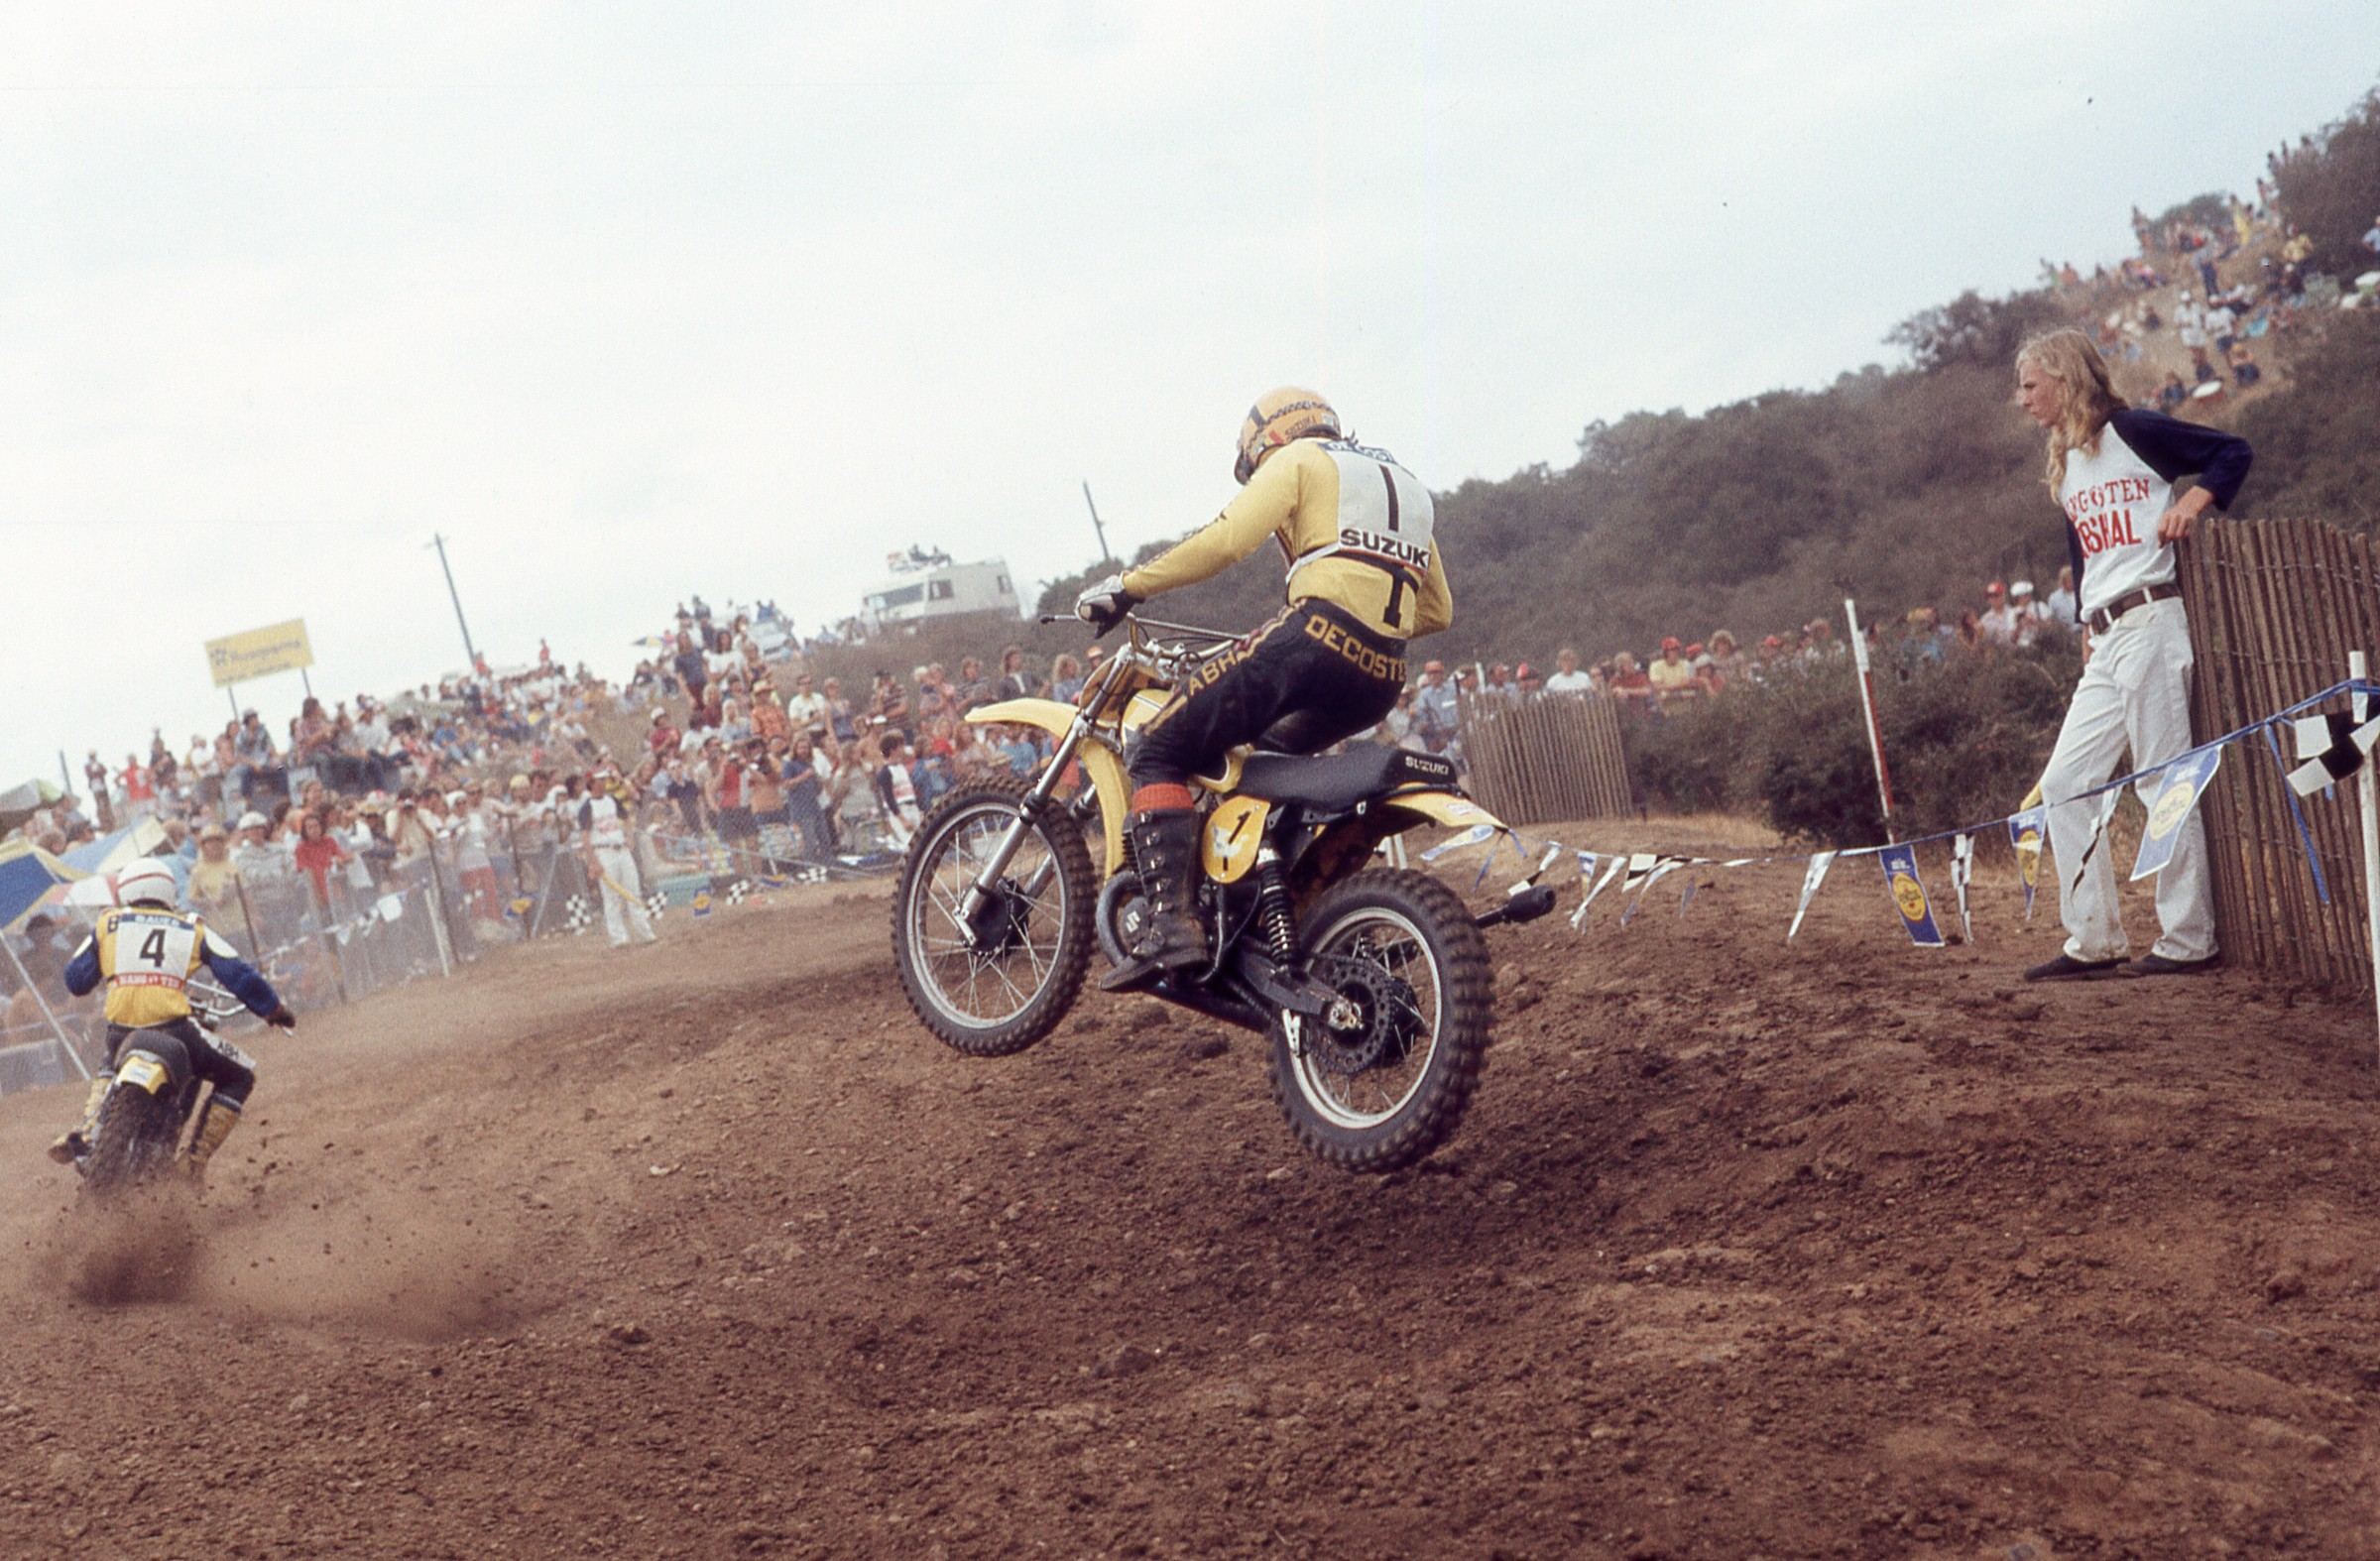 Roger DeCoster chases after Maico rider Willi Bauer.